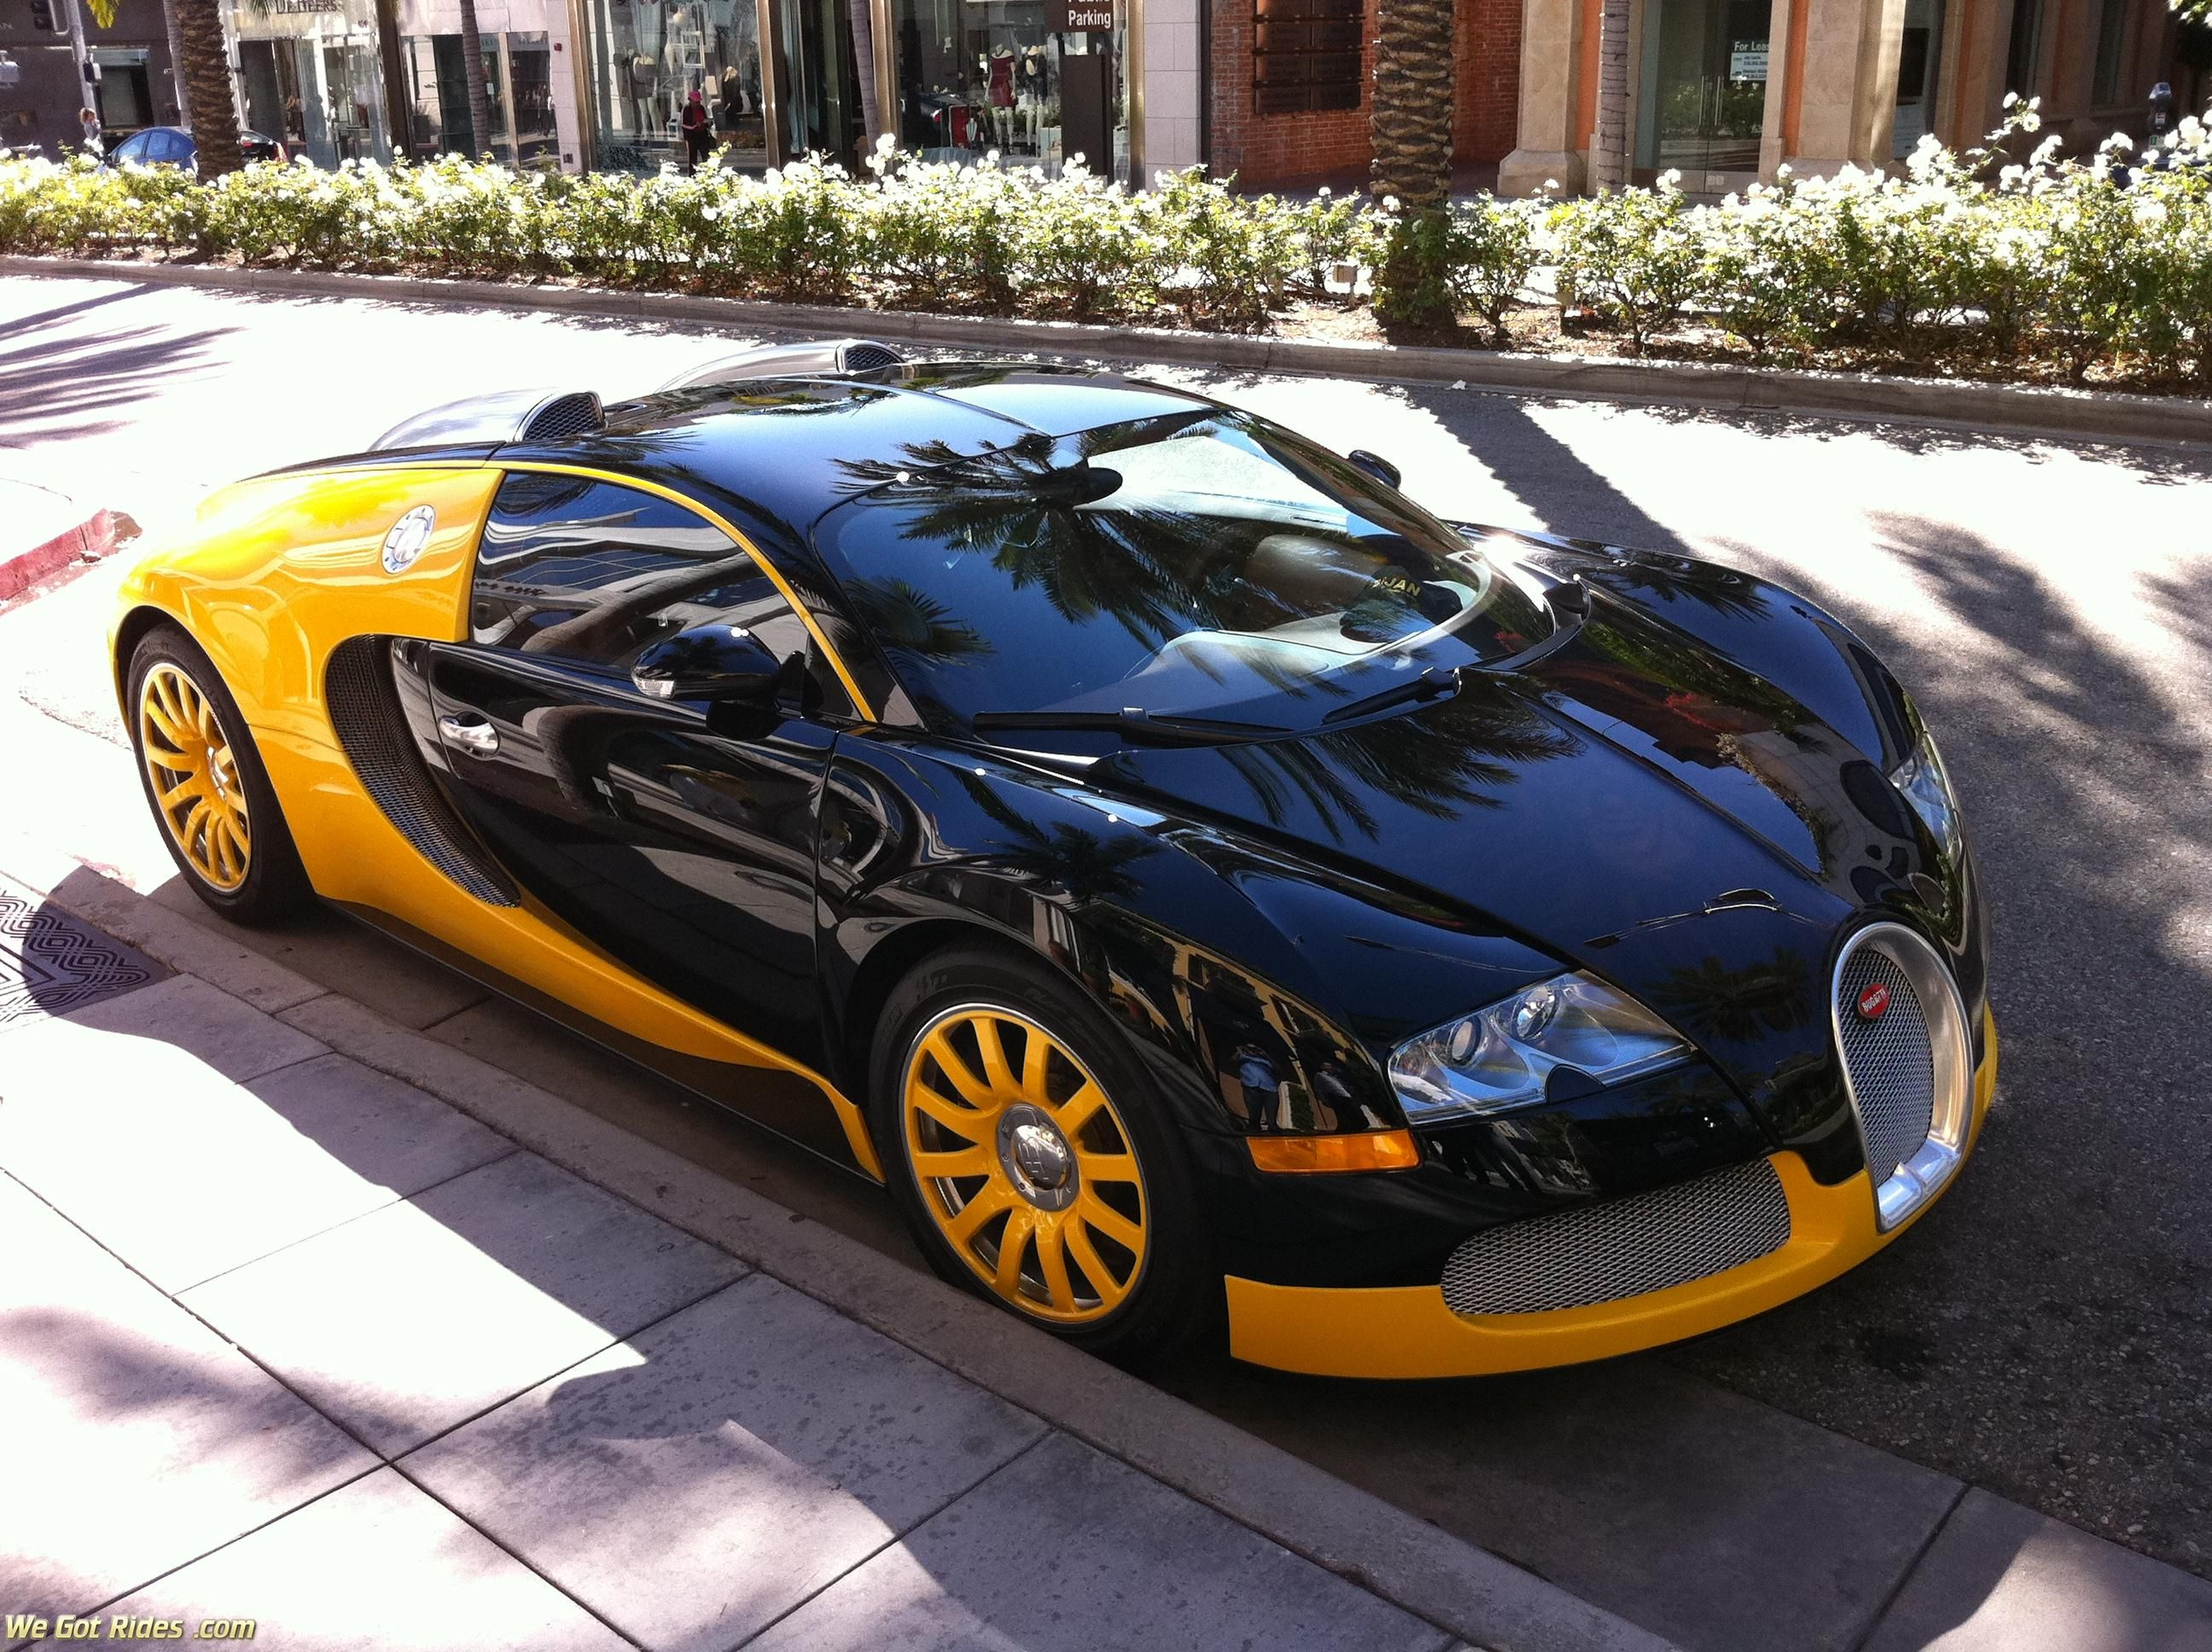 857927b32da2cc298560d3251c53b064 Exciting Bugatti Veyron Cost for Oil Change Cars Trend